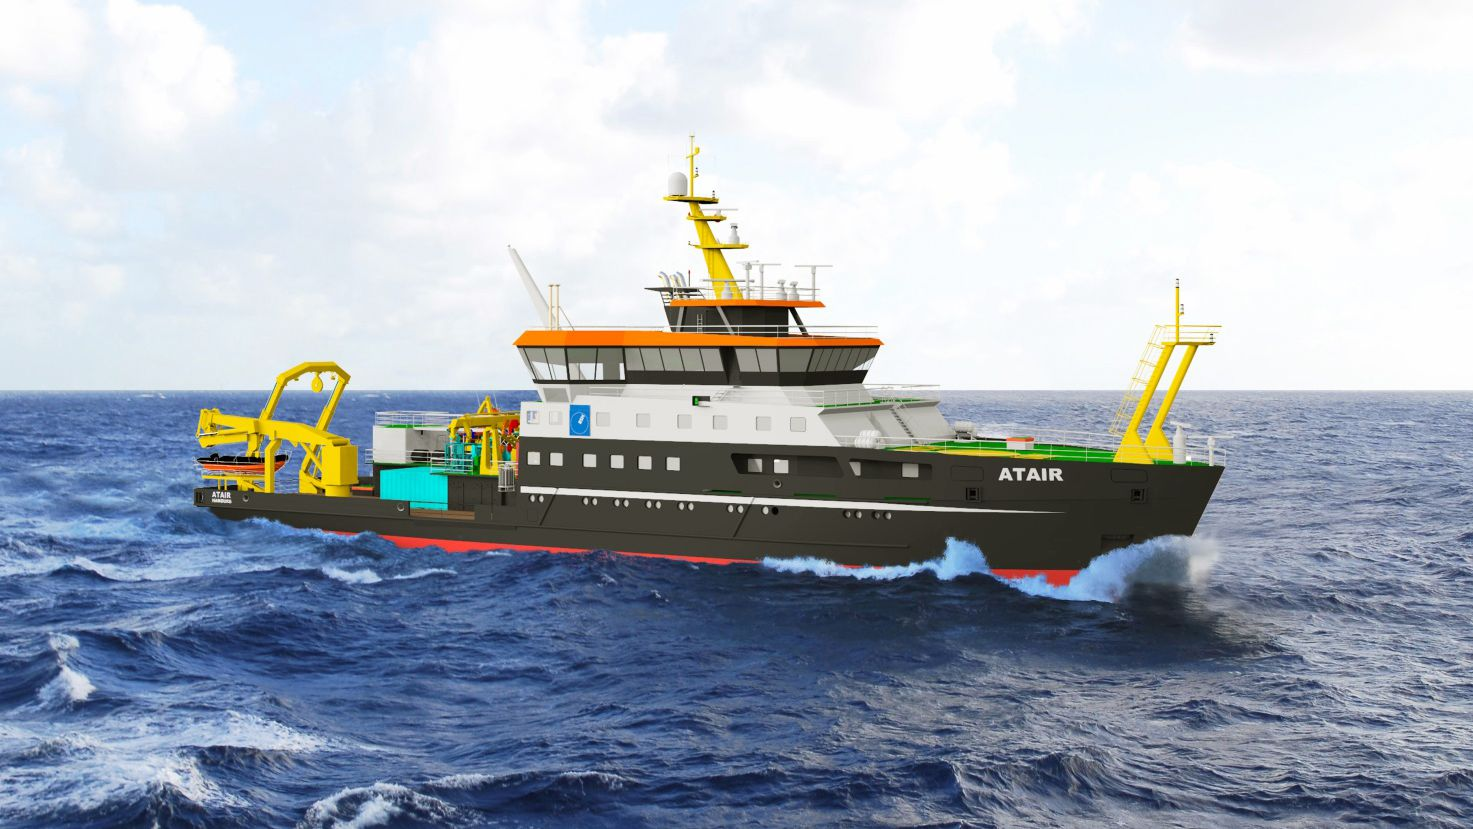 rendering of the Atair; first vessel in the BSH fleet with LNG technology